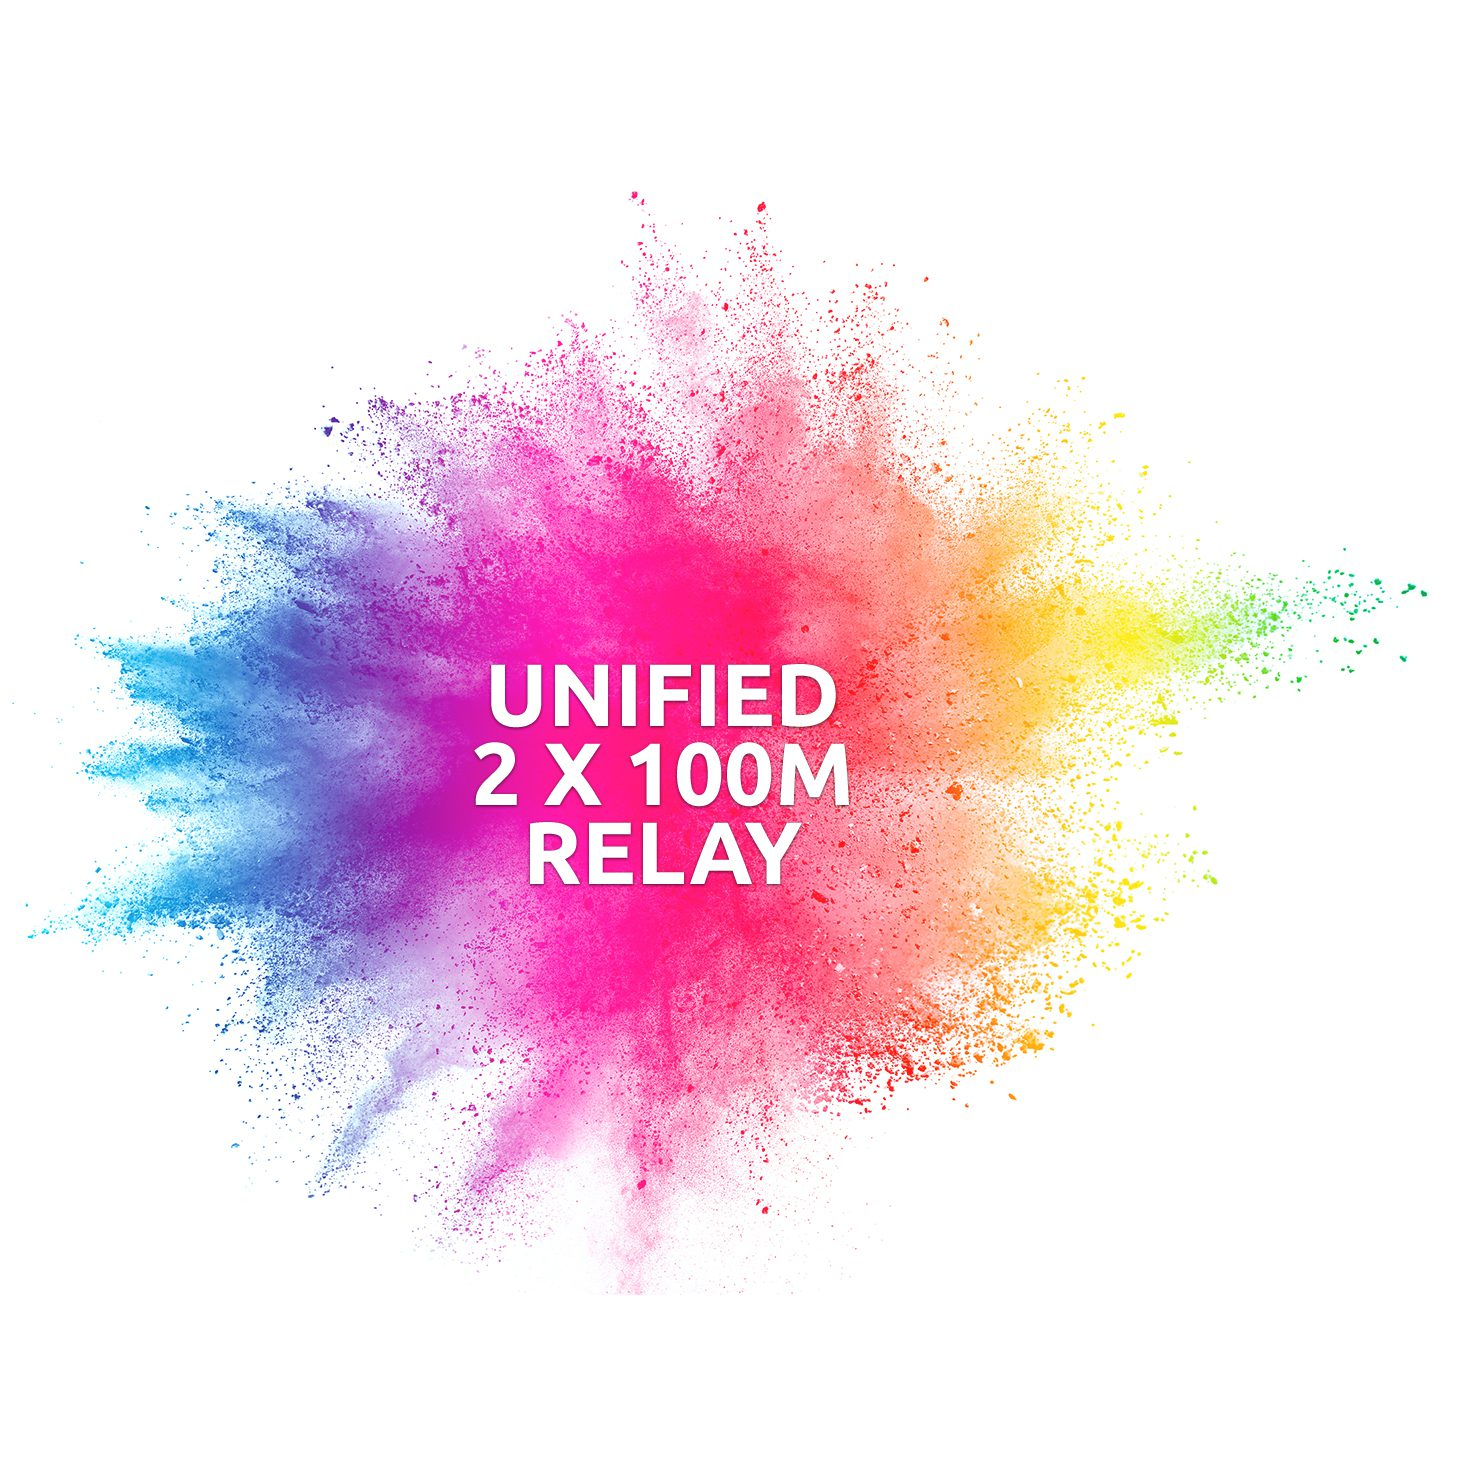 """Featured image for """"Unified 2 x 100m Relay"""""""